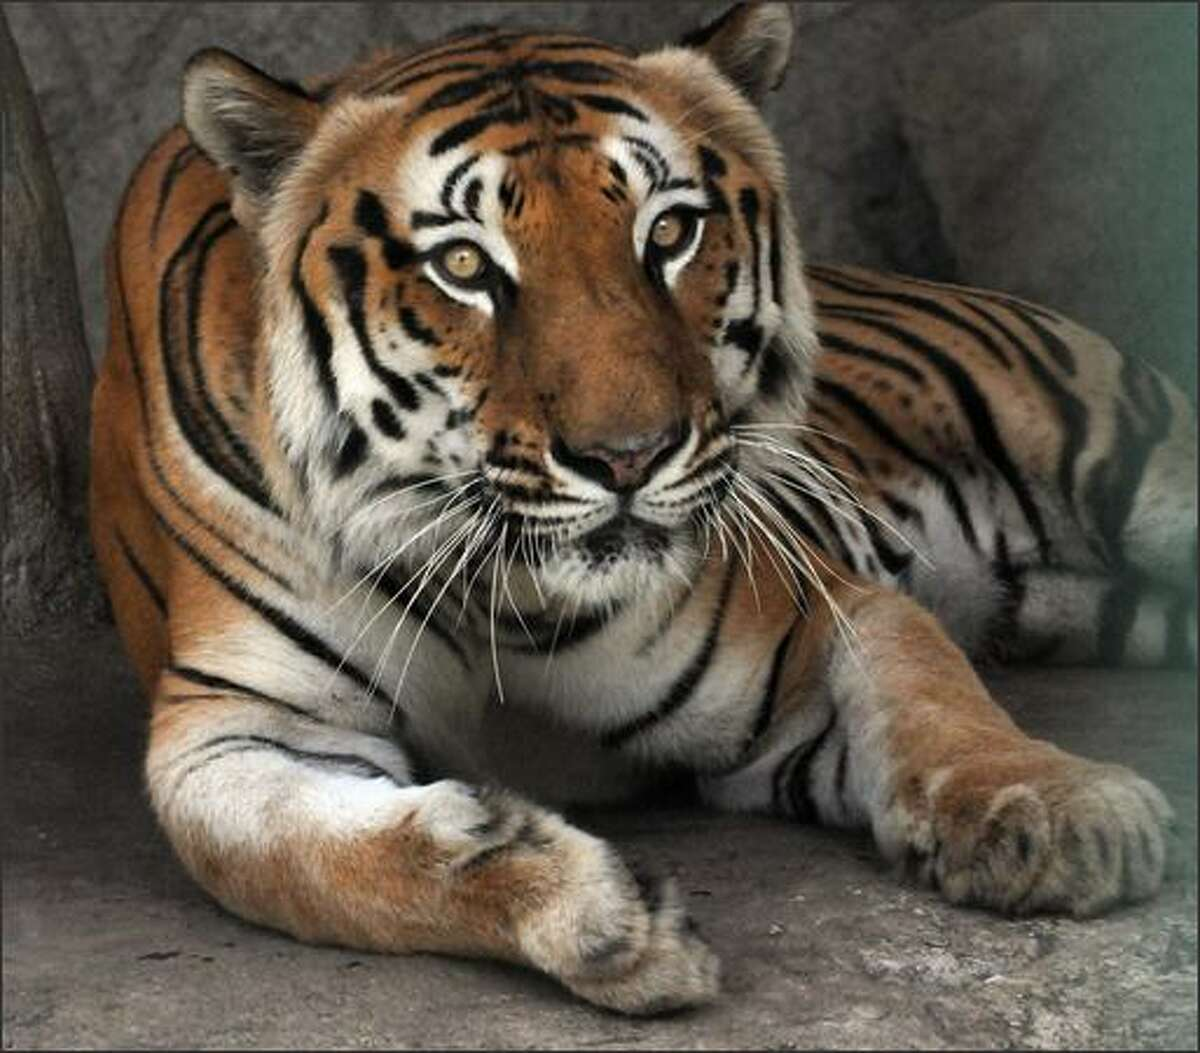 A Bengal Tiger (Pantera tigris tigris) lies in its cage at the Nicaraguan National Zoo during Earth Day in Managua. Different species of animals in danger of exctintion are in many zoos around the world.